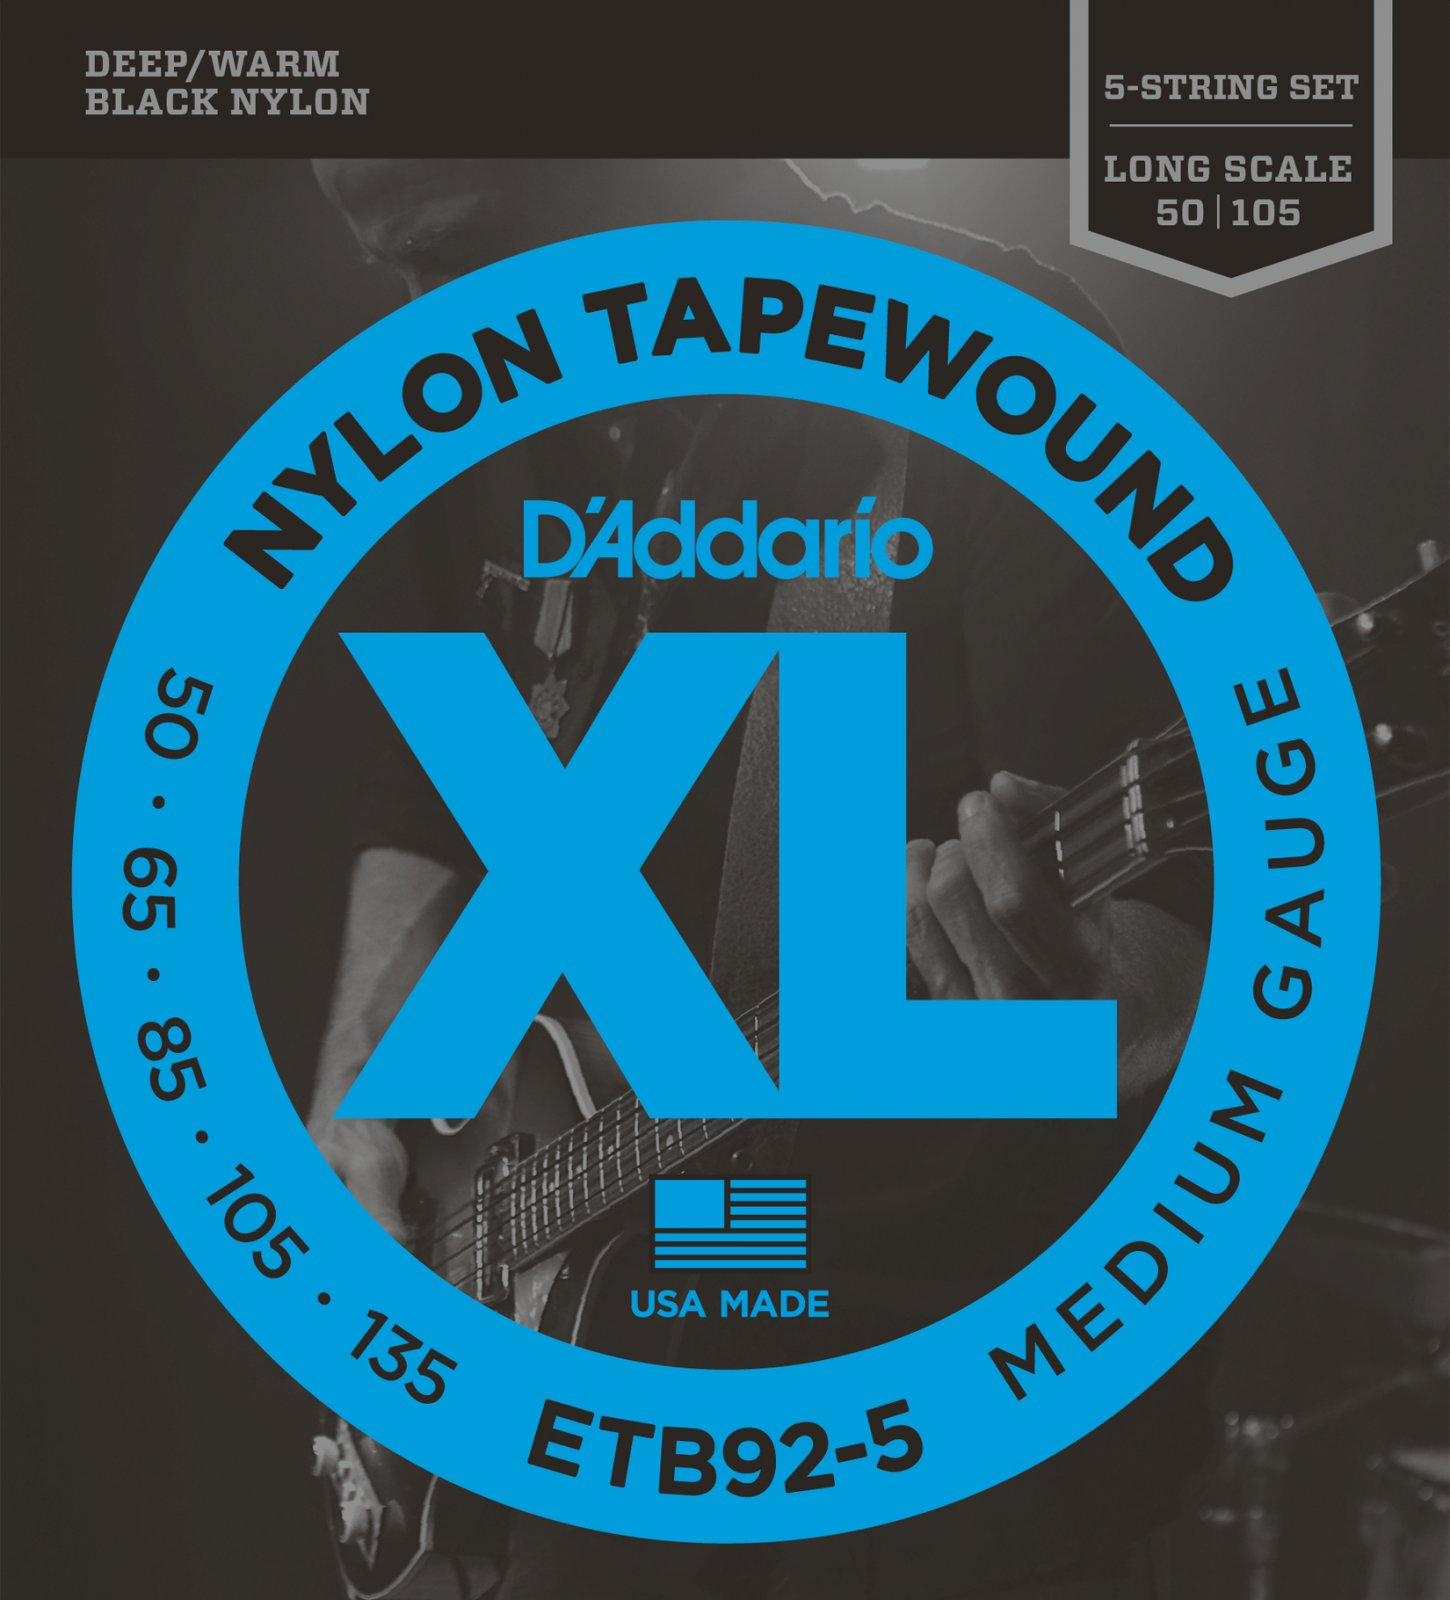 D'Addario ETB92-5 5-String Tapewound Bass Guitar Strings, Medium, 50-135 Long Sc...